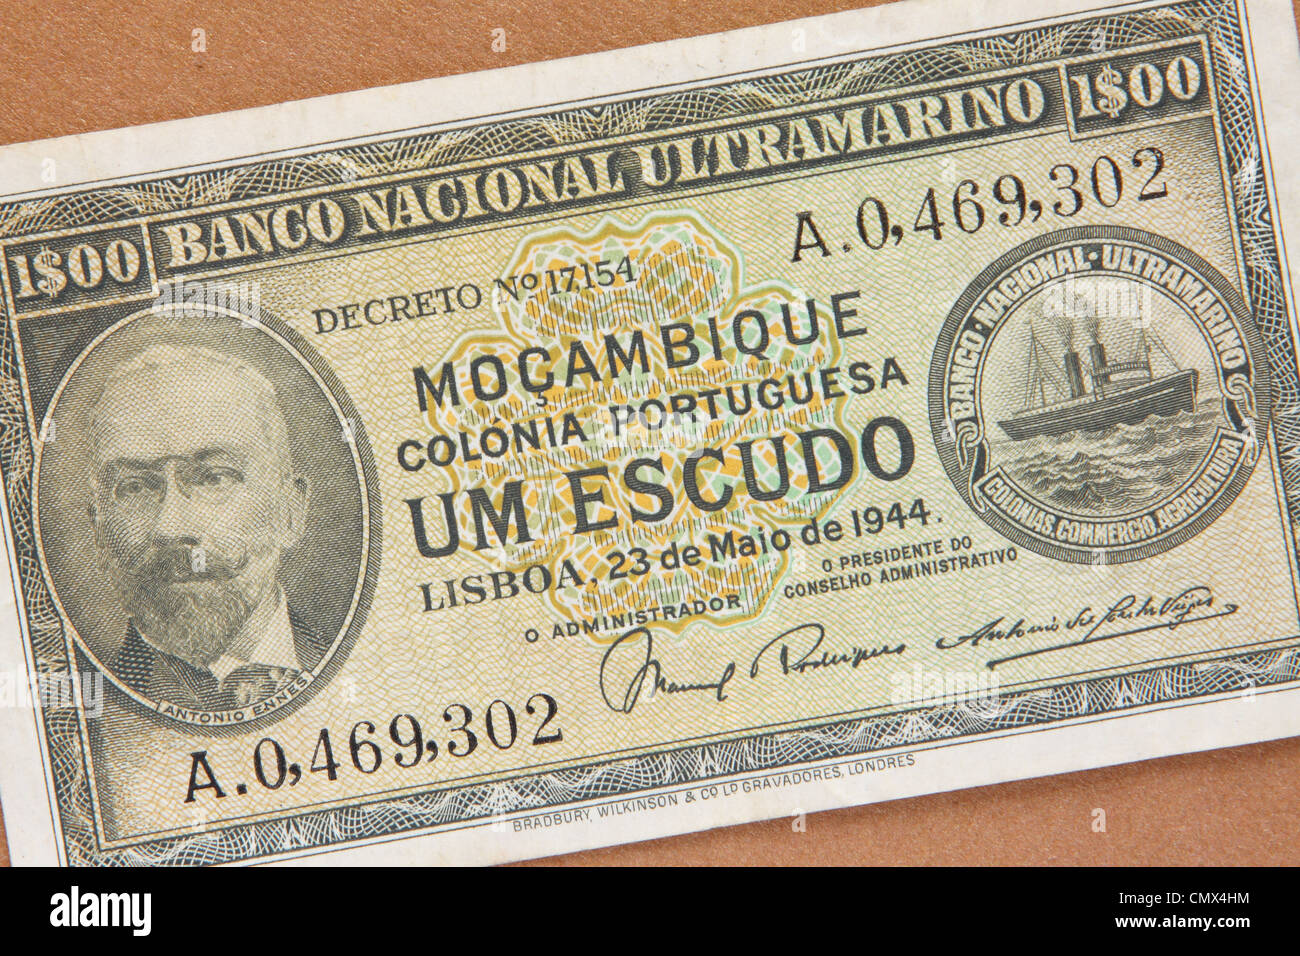 Mozambique - bank note à partir de l'ancienne colonie portugaise du Mozambique Mocambique daté 1944 Photo Stock